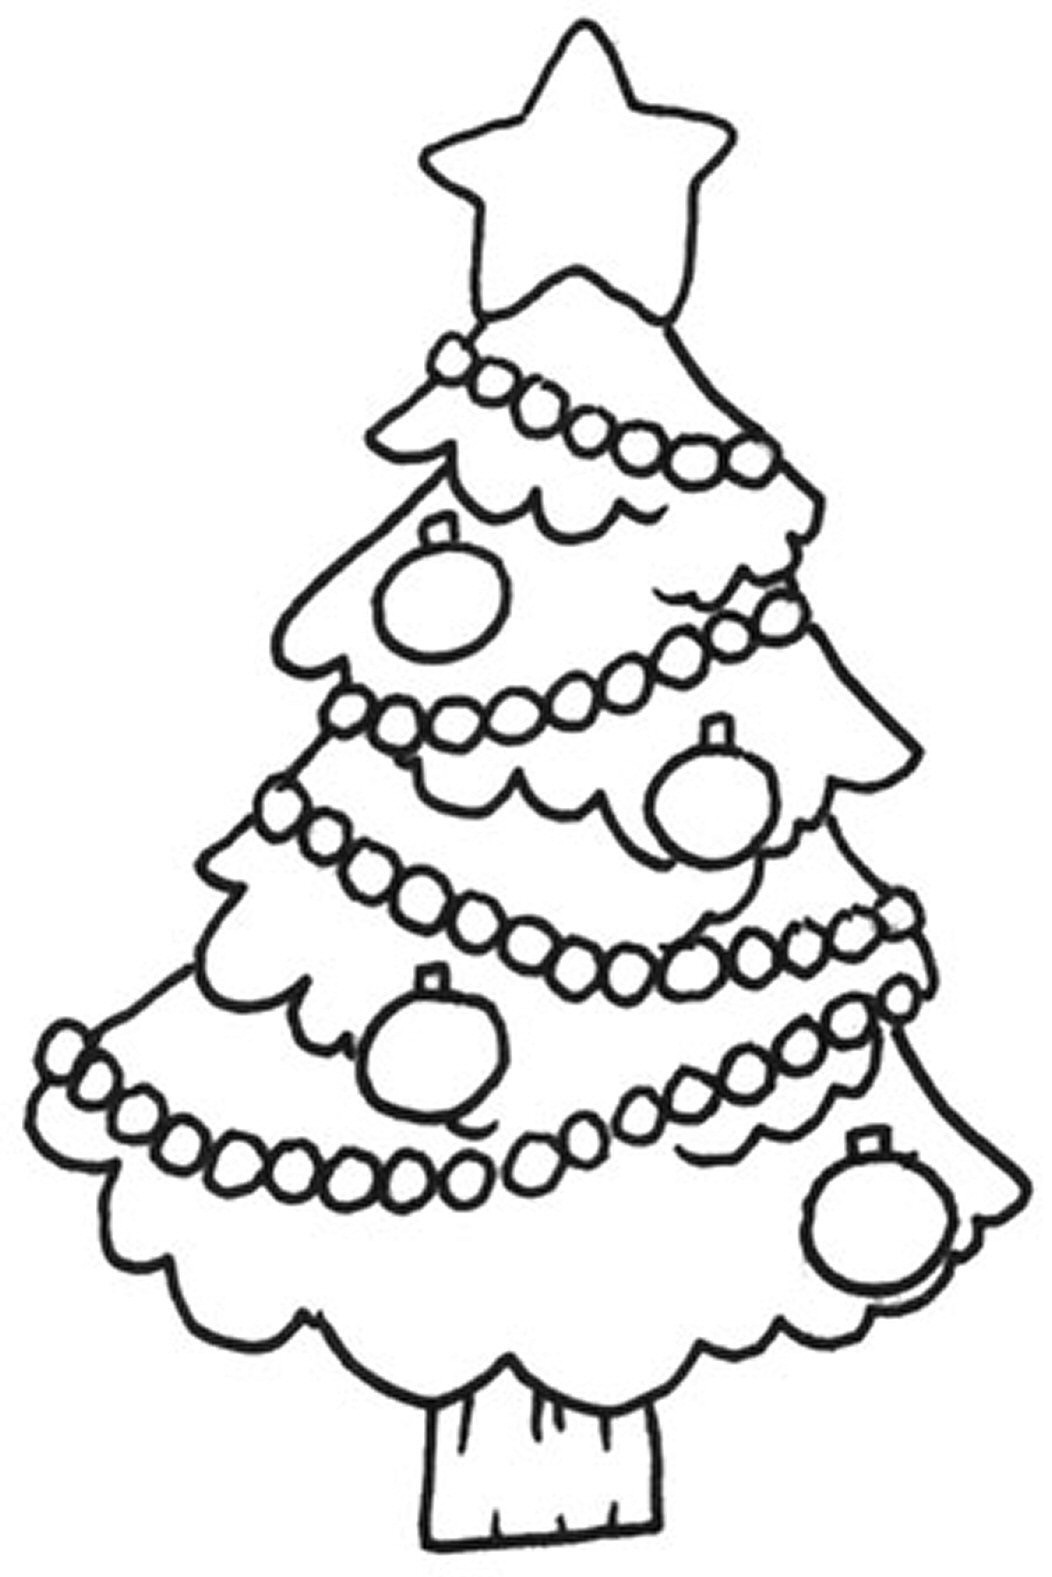 Free Christmas Coloring Pages For Kids  Free Printable Christmas Tree Coloring Pages For Kids